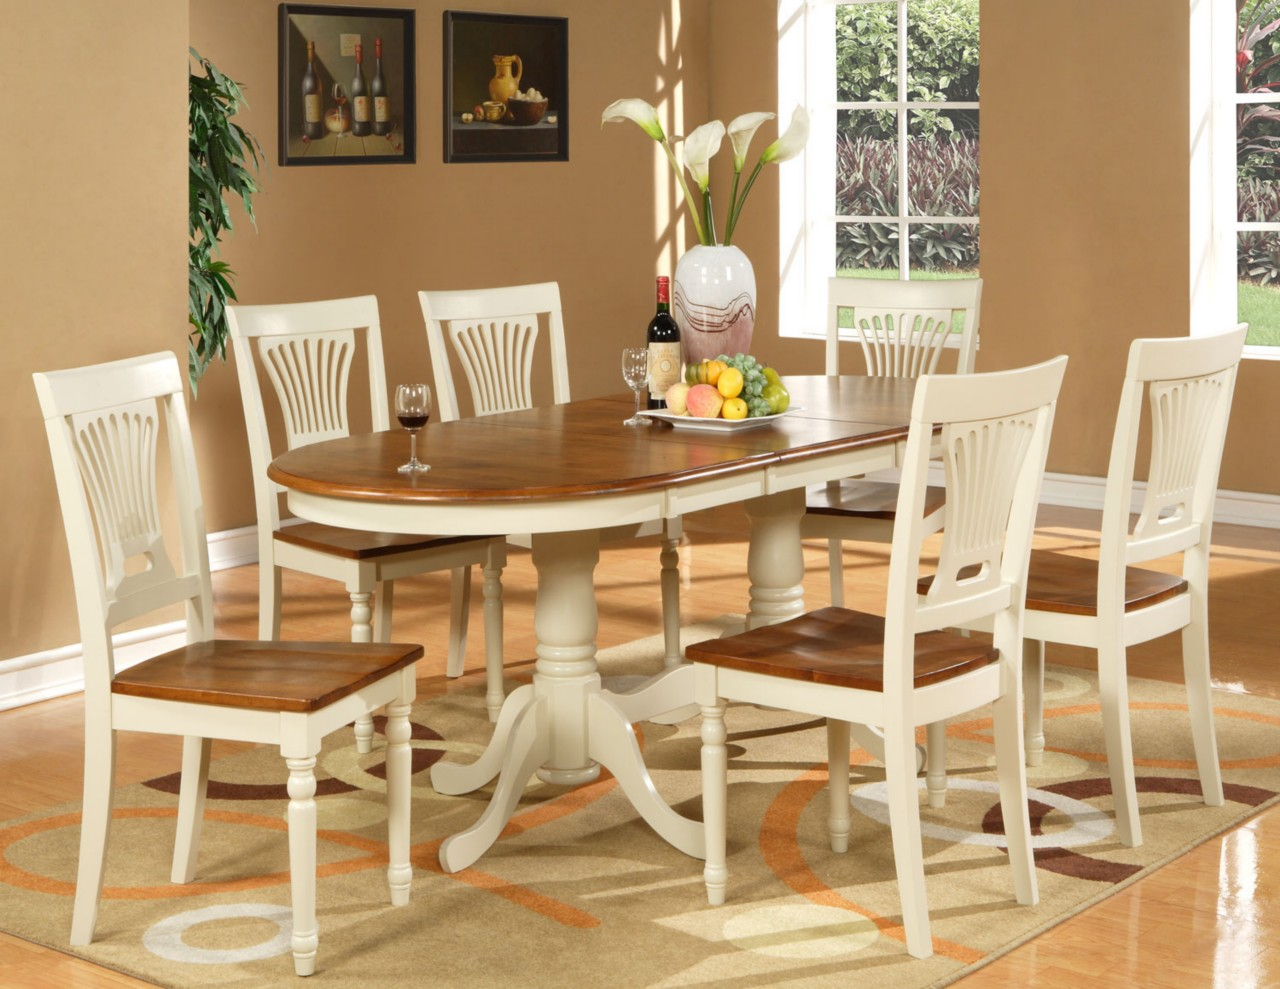 7pc oval dining room set table 6 chairs extension leaf ebay for Dining room table with 6 chairs